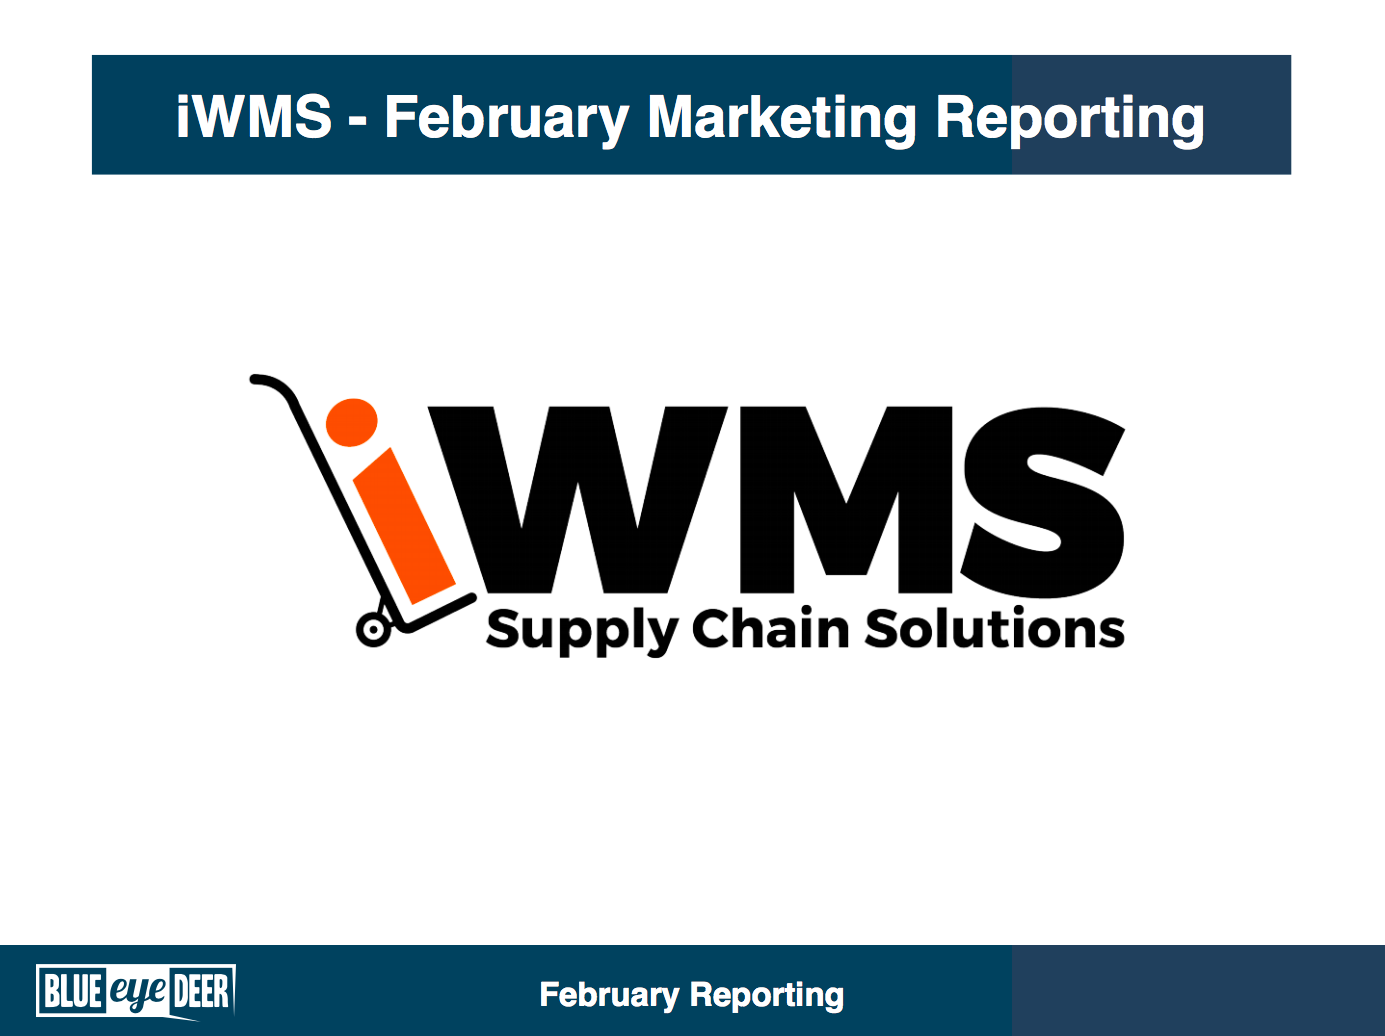 Regular Reporting - We keep iWMS informed about progress and updates as we go, ensuring no one is left in the dark and iWMS are part of the process. As the client always understands their business and industry the best, and need to be involved in strategy and planning discussions!In addition, we send a monthly report that summarises key metrics such as SEO, social media, email and site data. We also summarise the highlights so iWMS can quickly and easily understand what is going well and areas that could be improved.